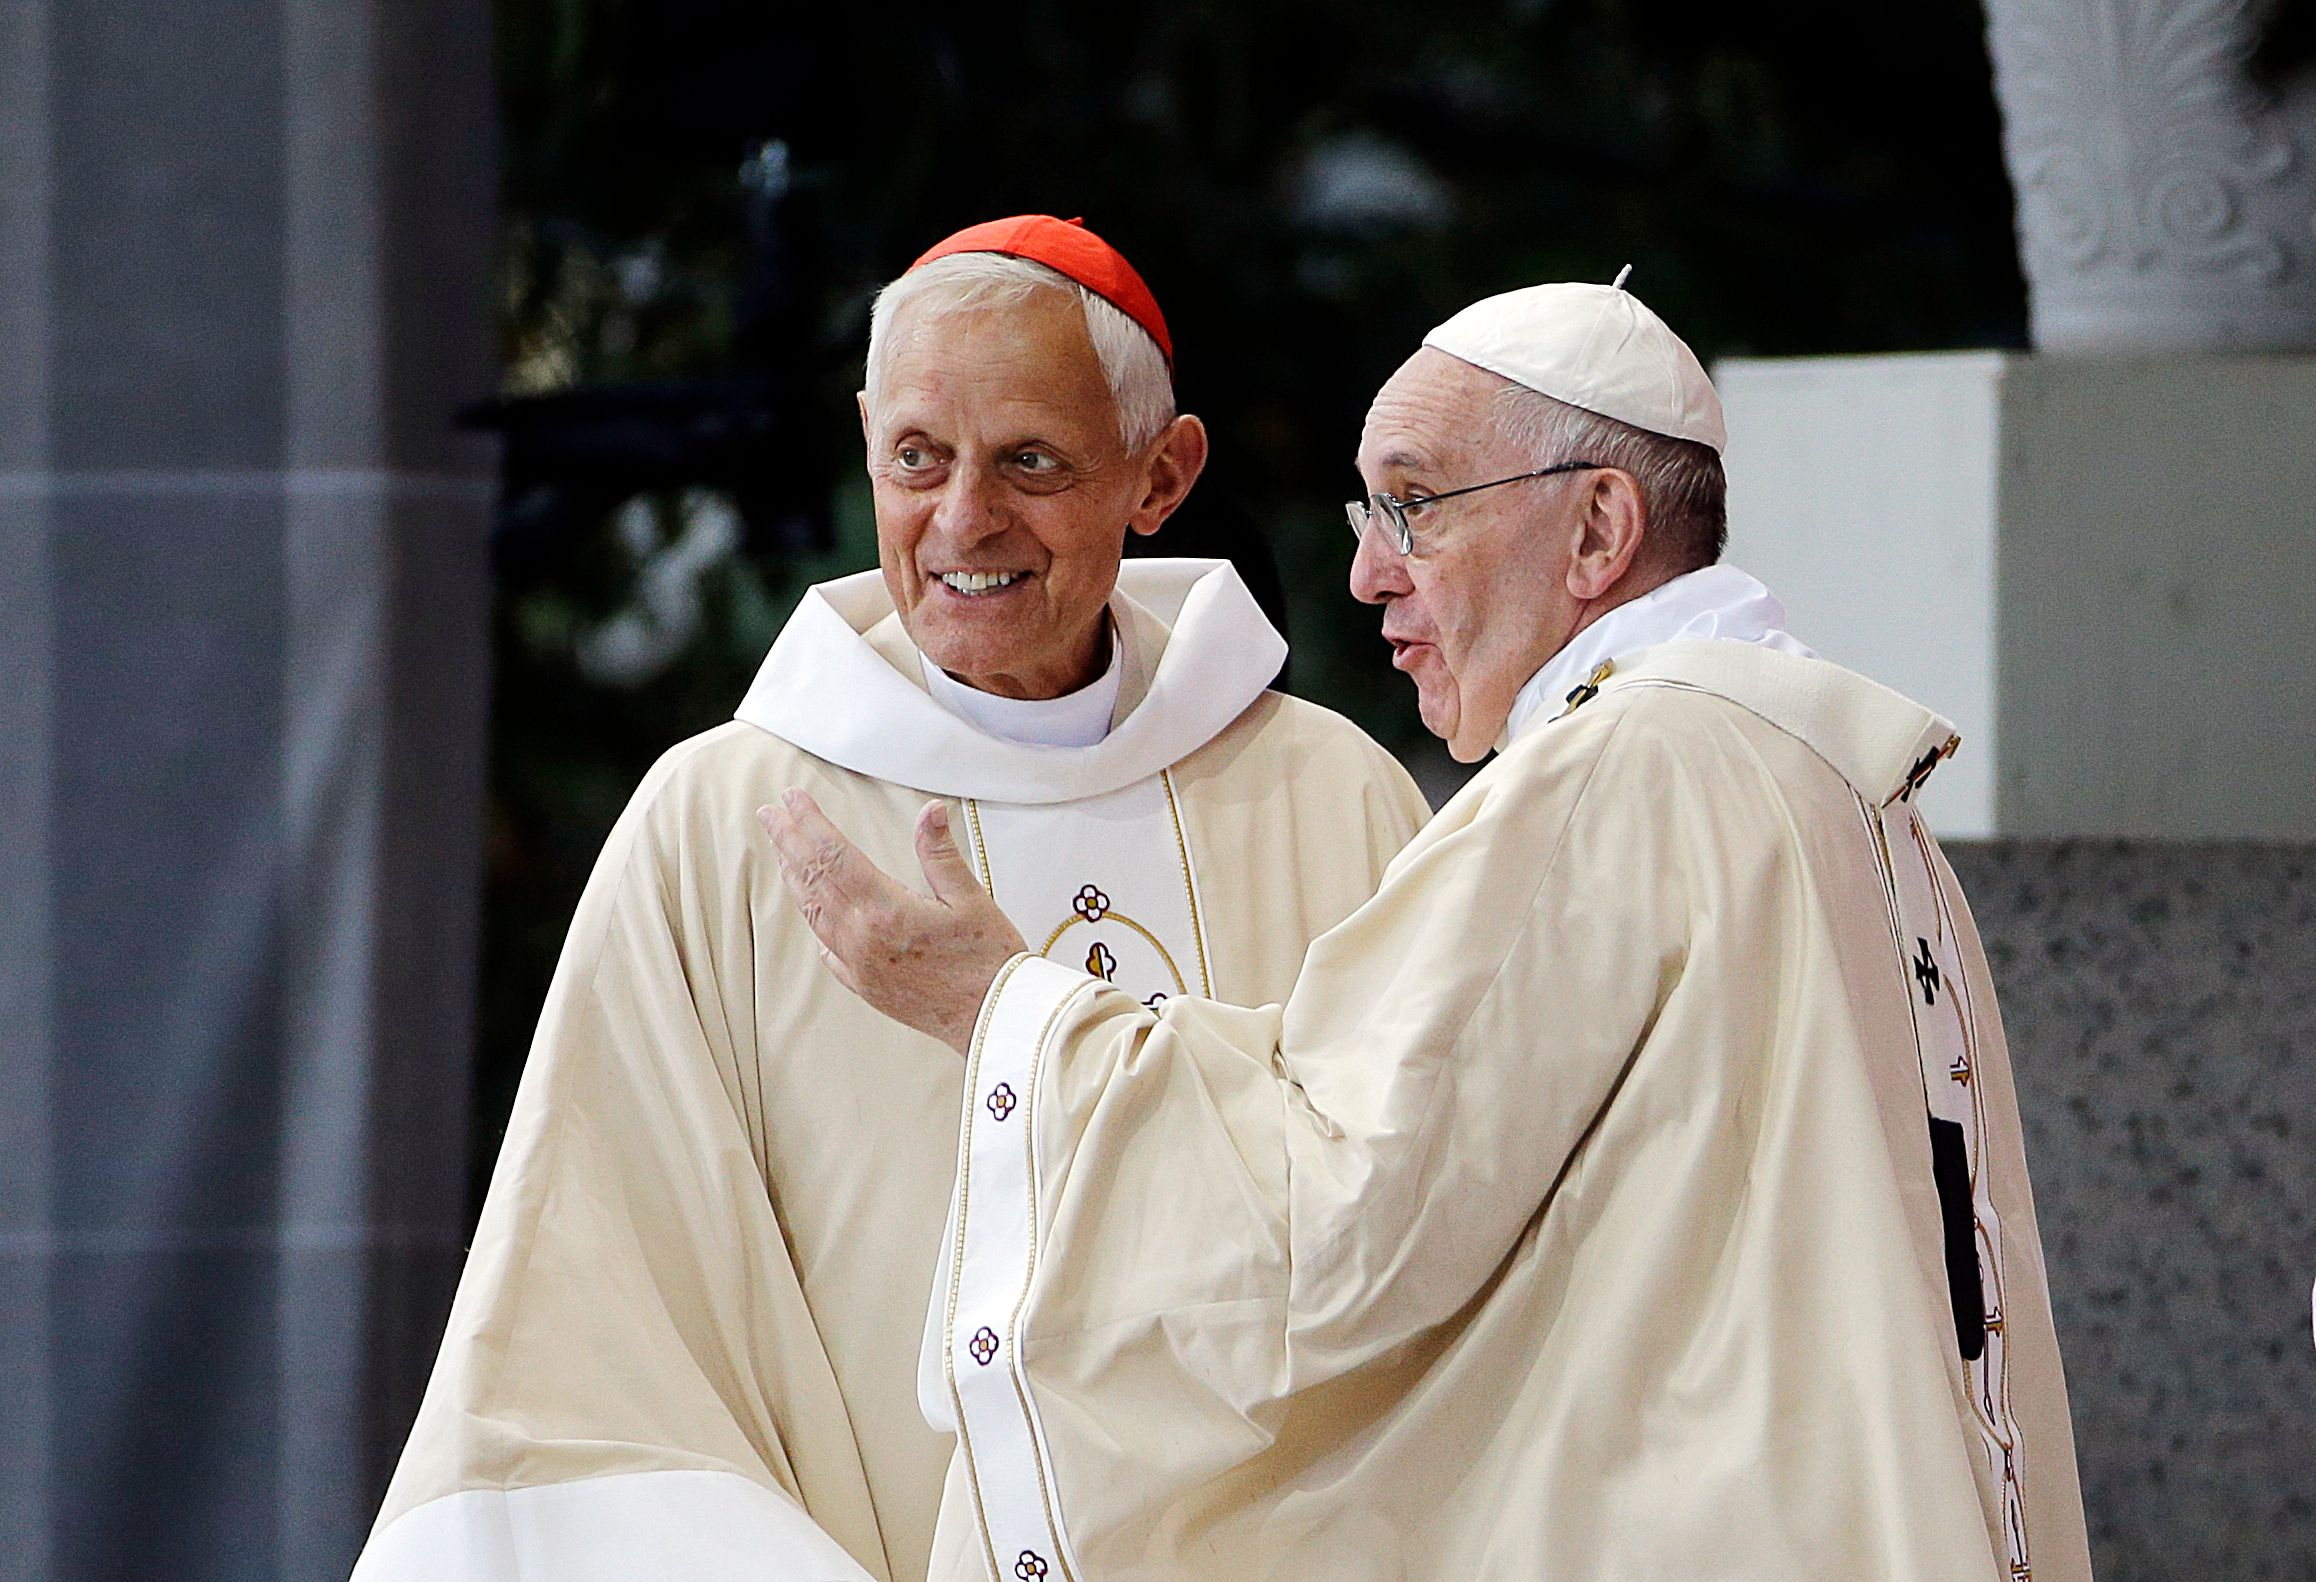 Pope Francis accepts resignation of Cardinal Wuerl in wake of sex-abuse scandals